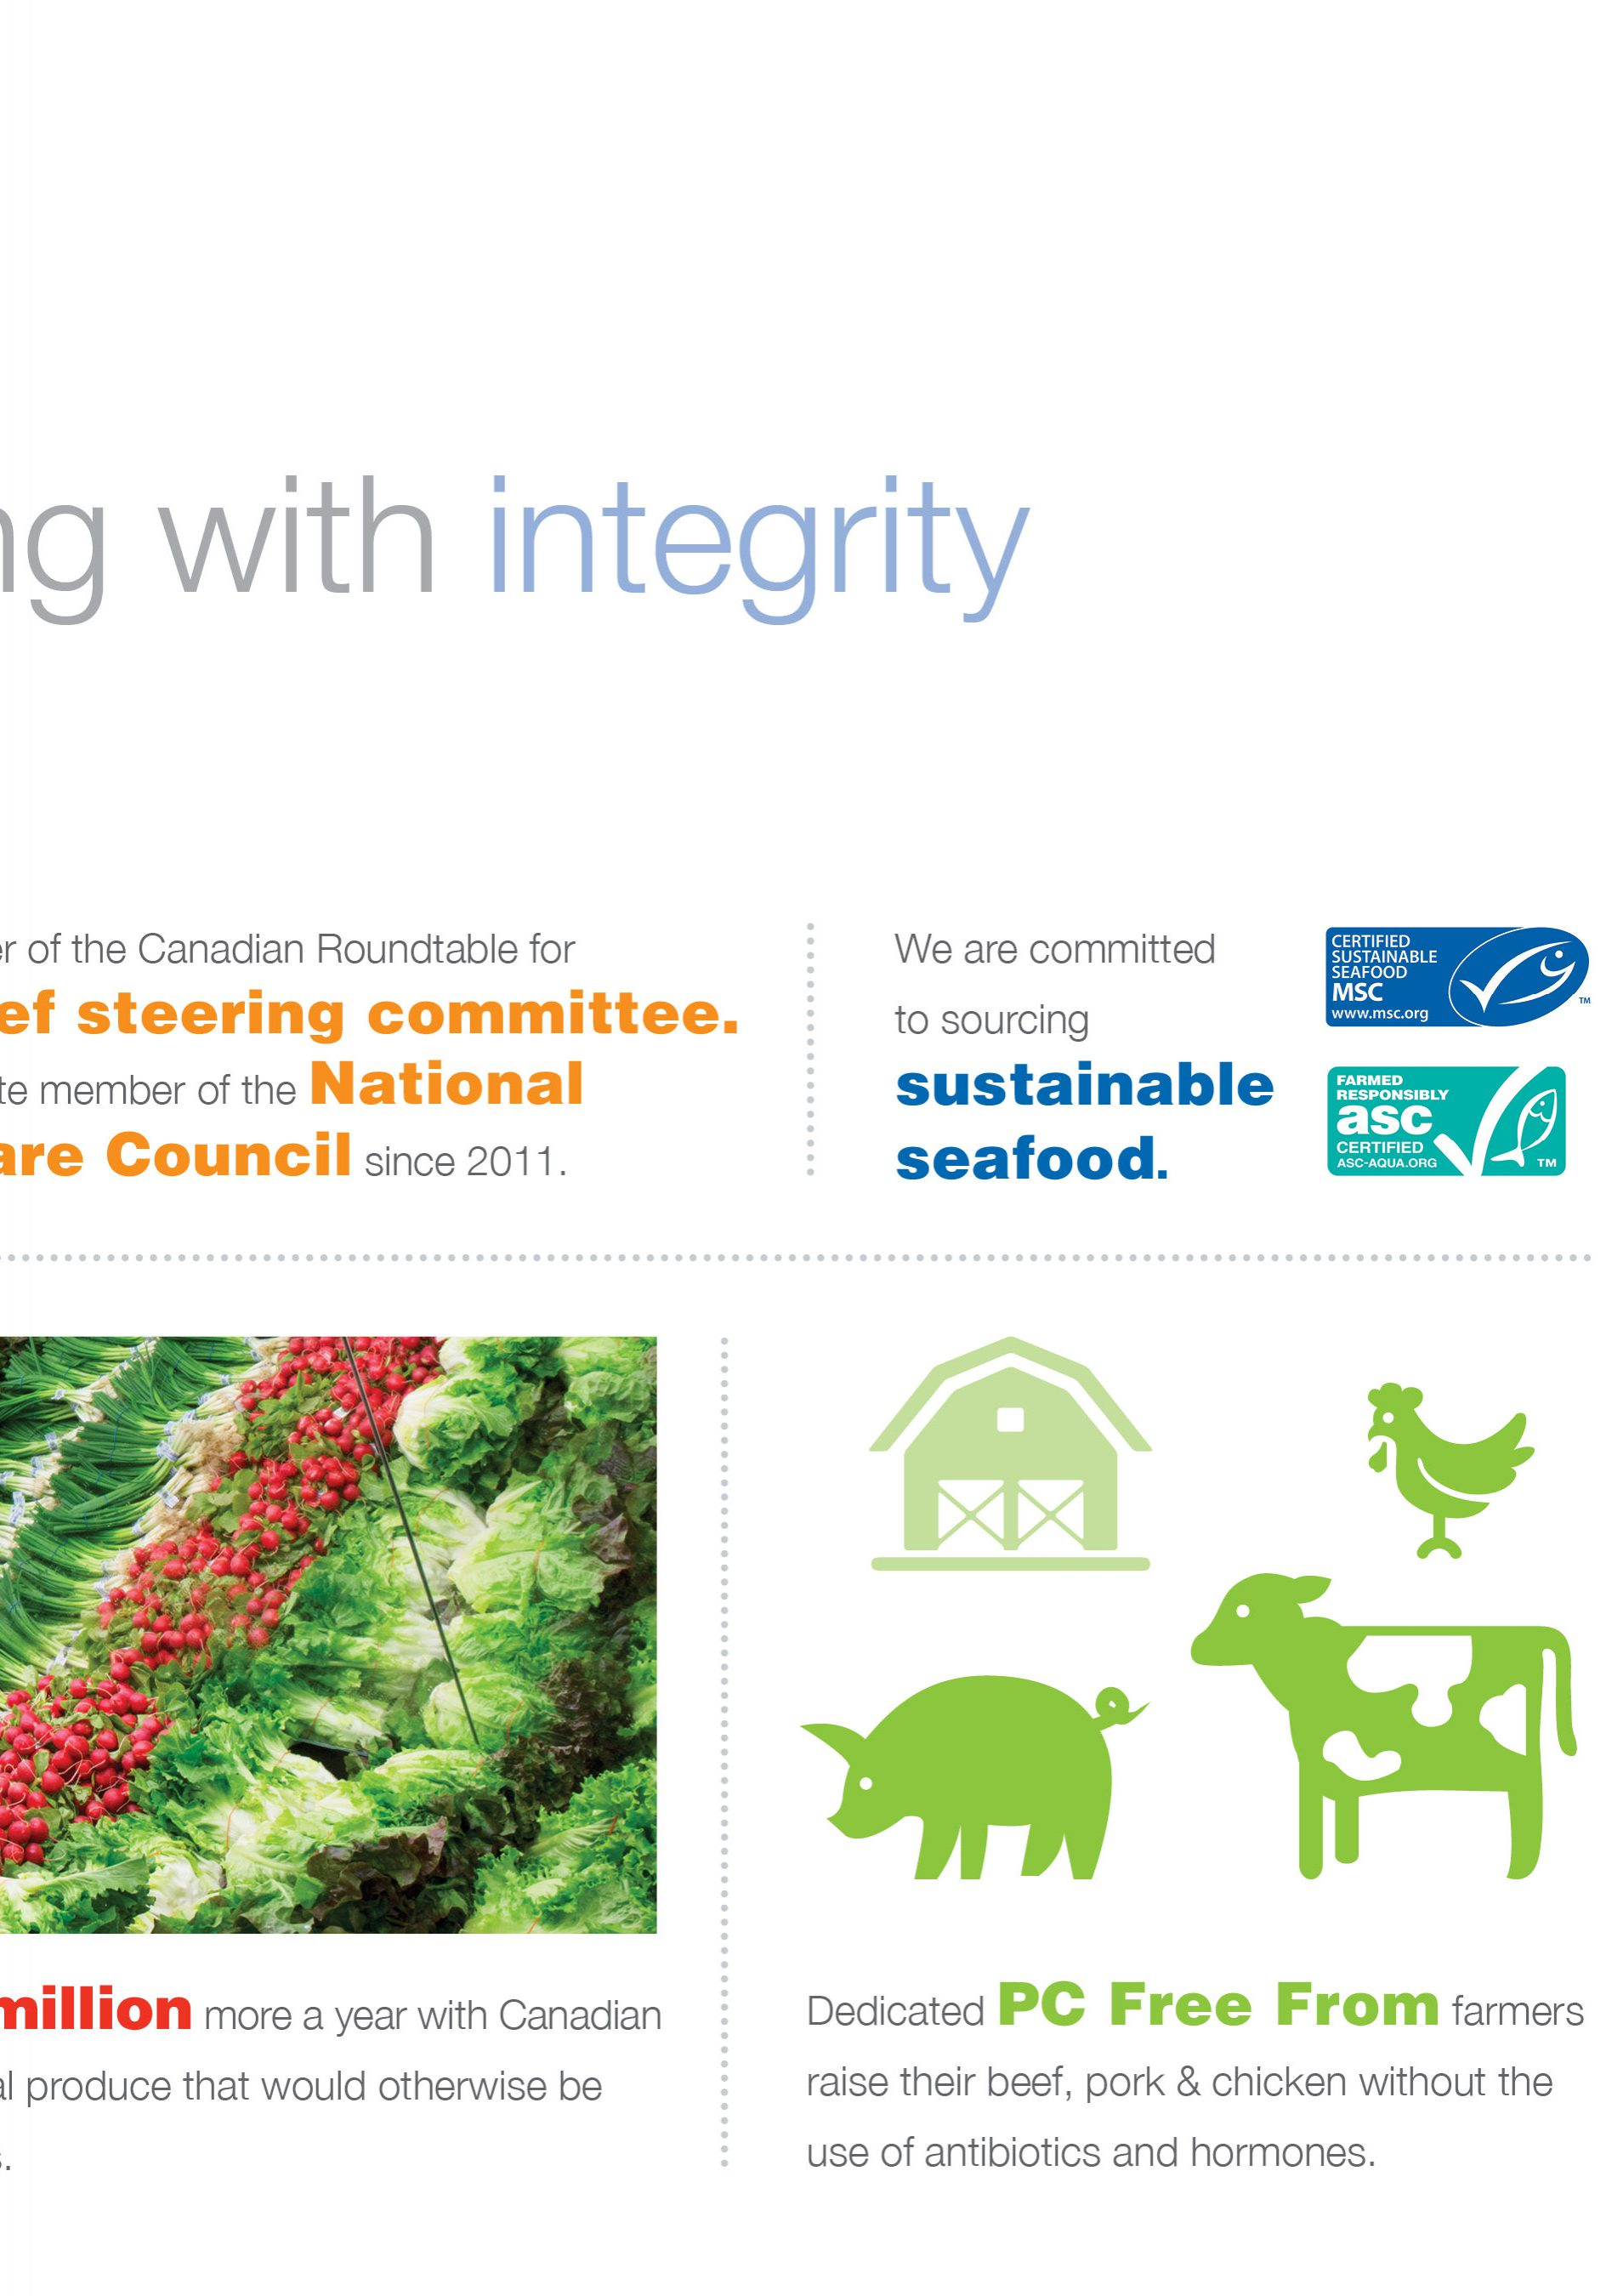 Loblaws Canada Infographic Sourcing with Integrity